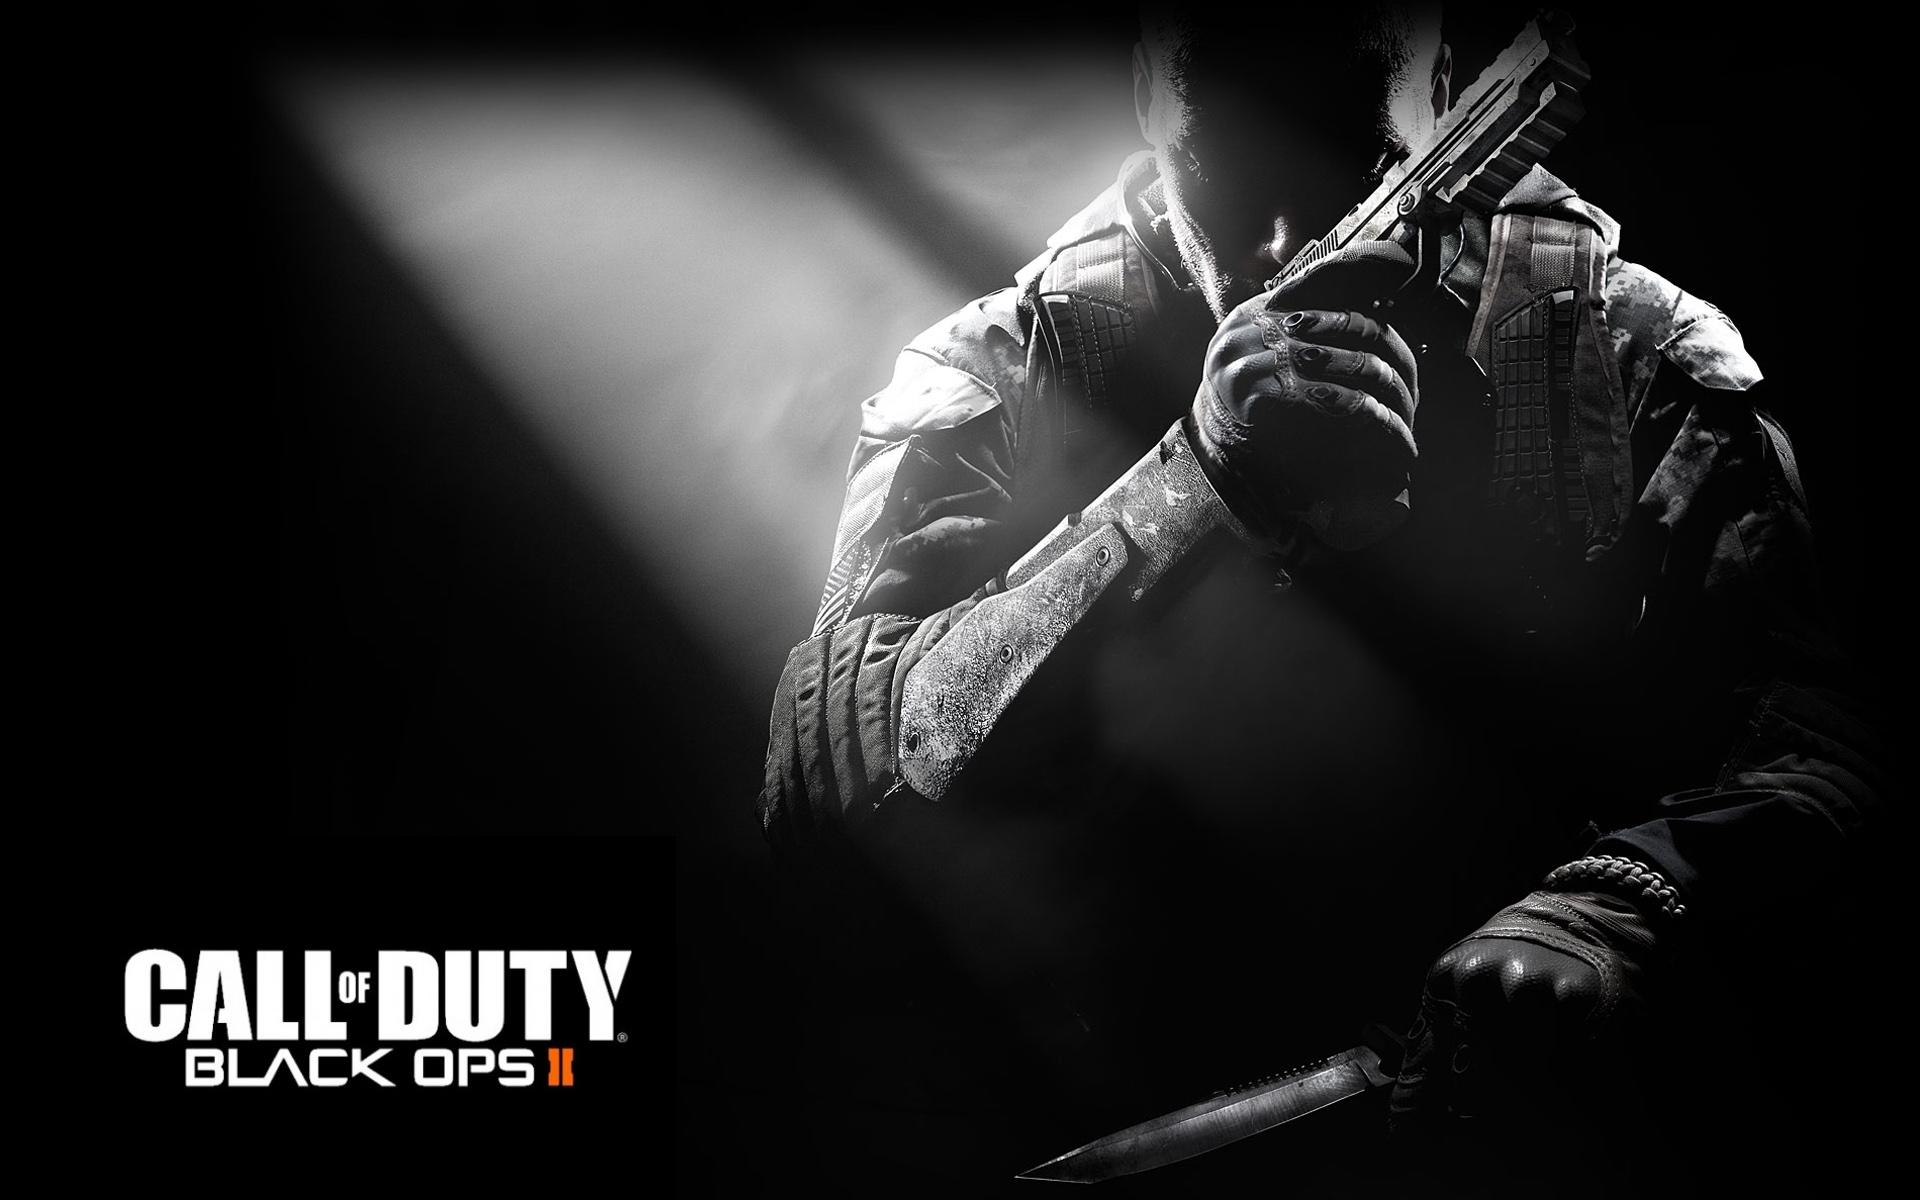 Call of Duty Black Ops 2 1428.78 Kb